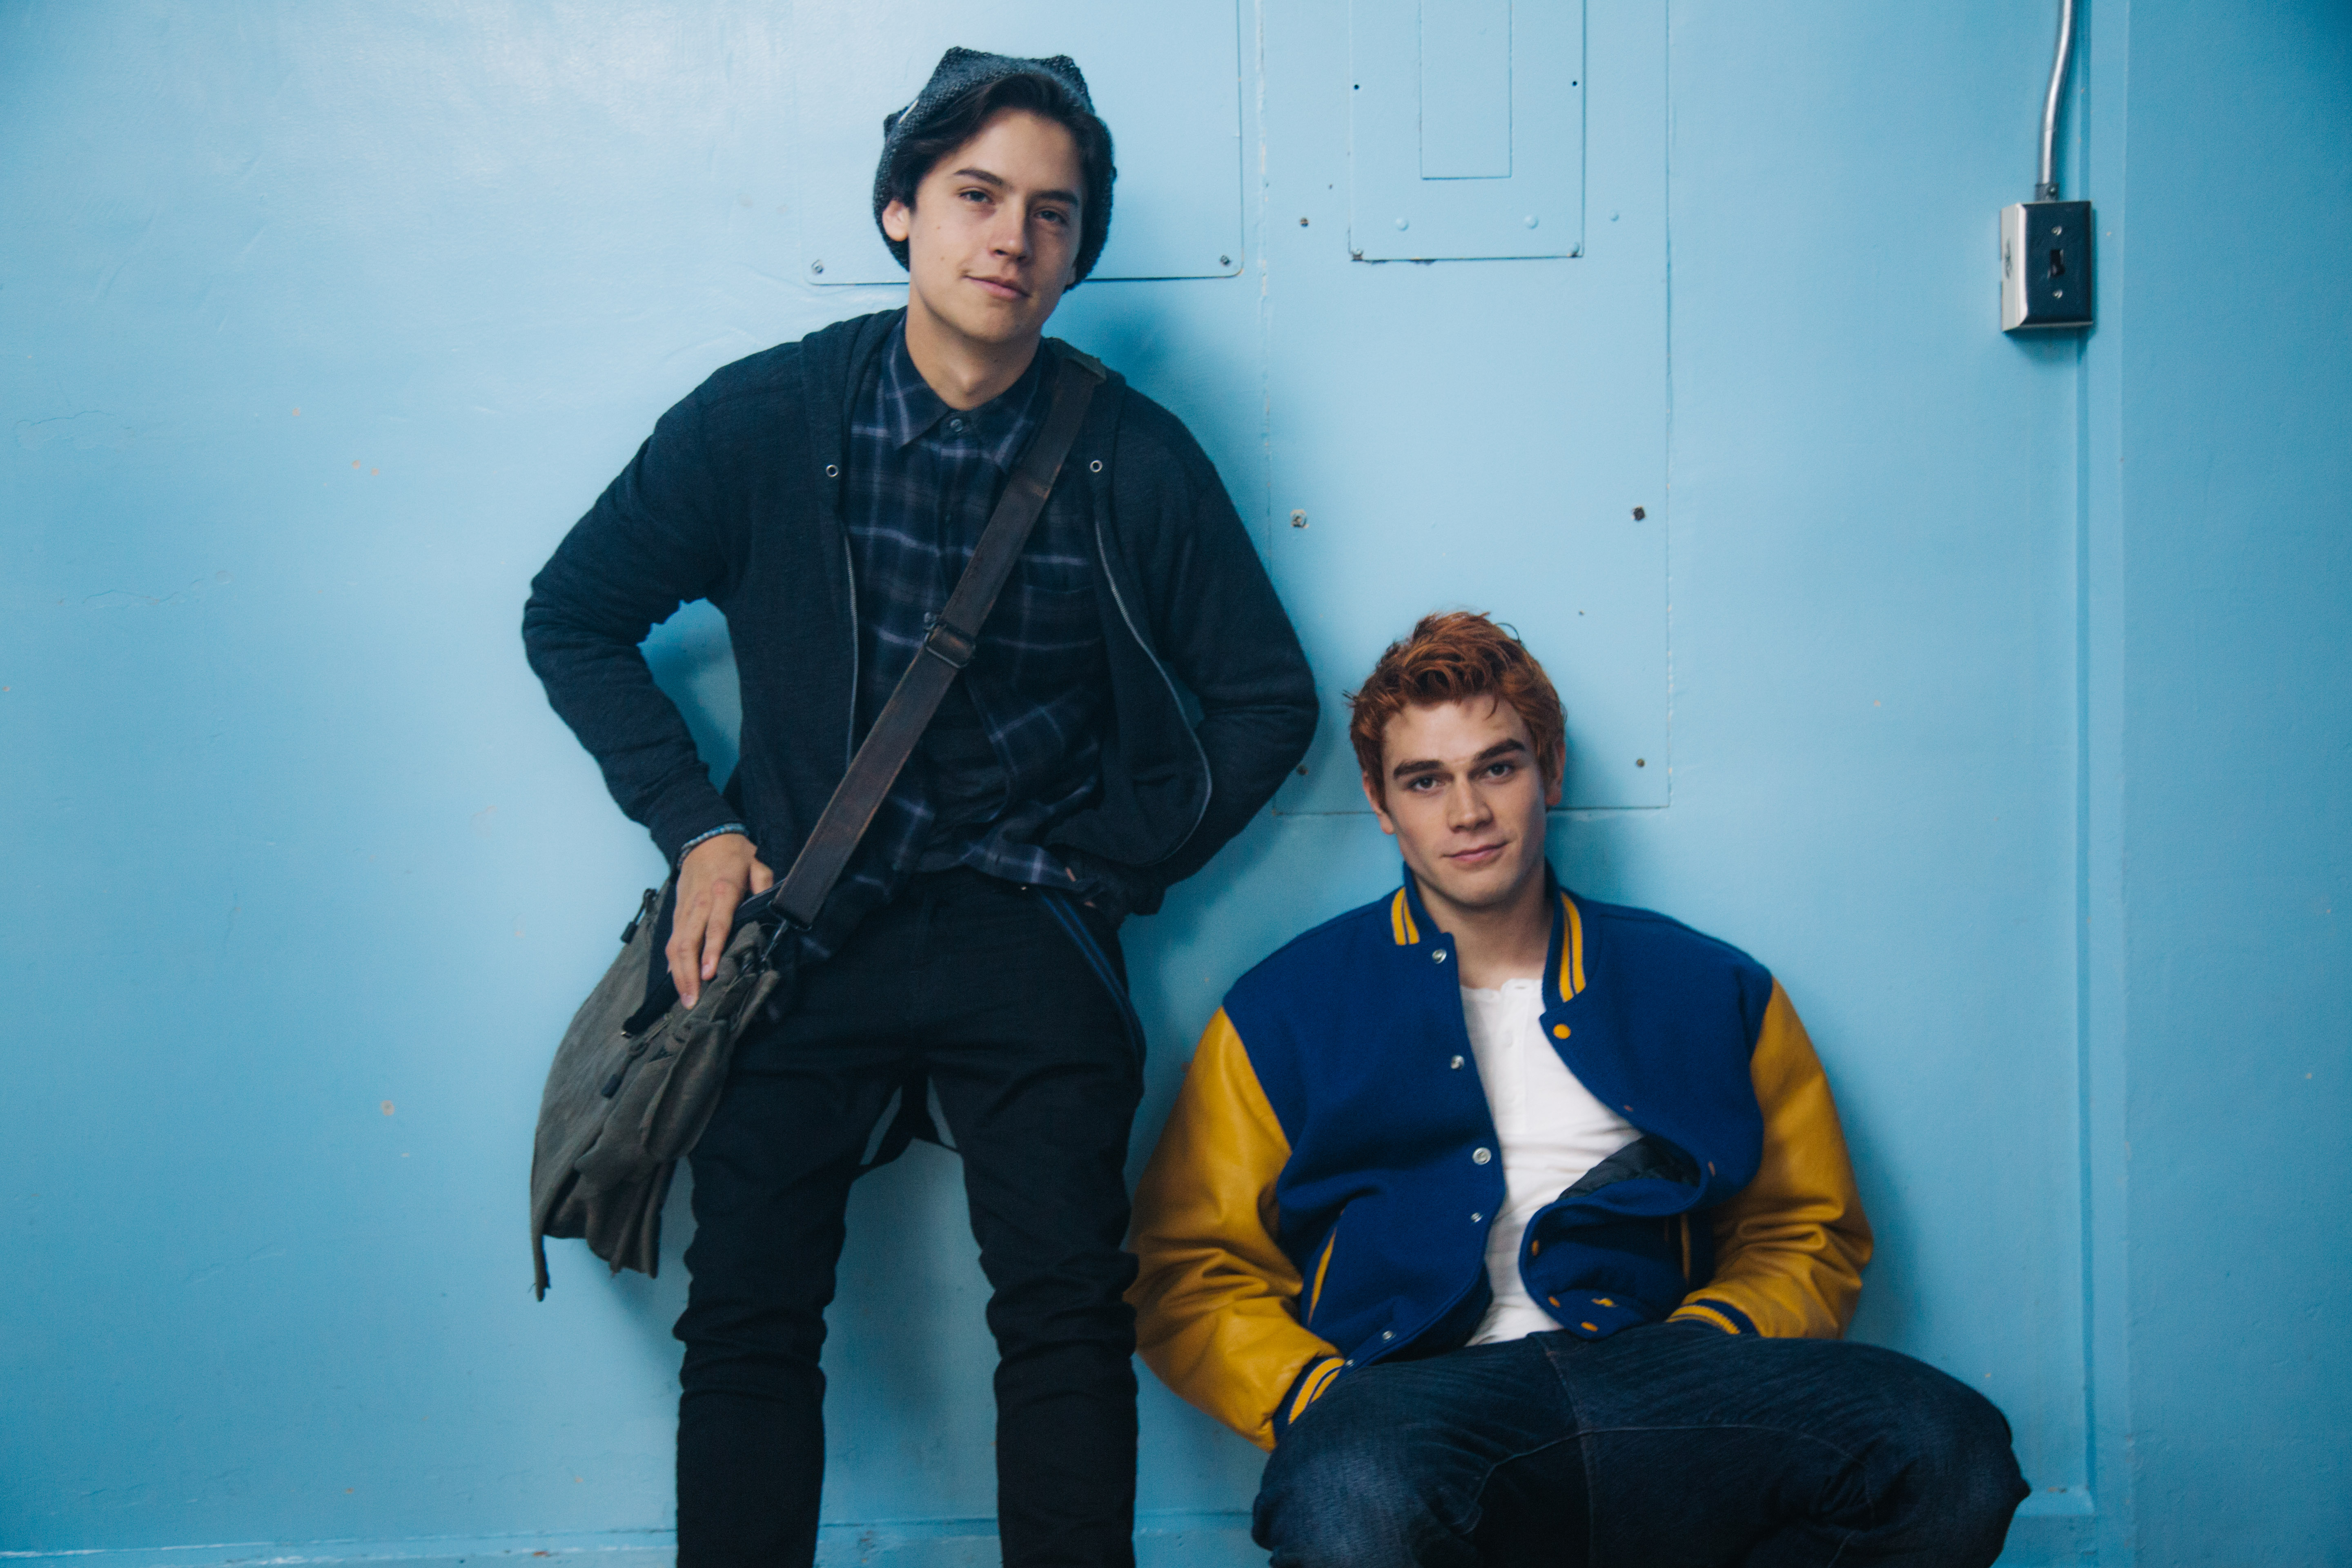 Archie Andrews Kj Apa And Jughead Cole Sprouse Hd Tv Shows 4k